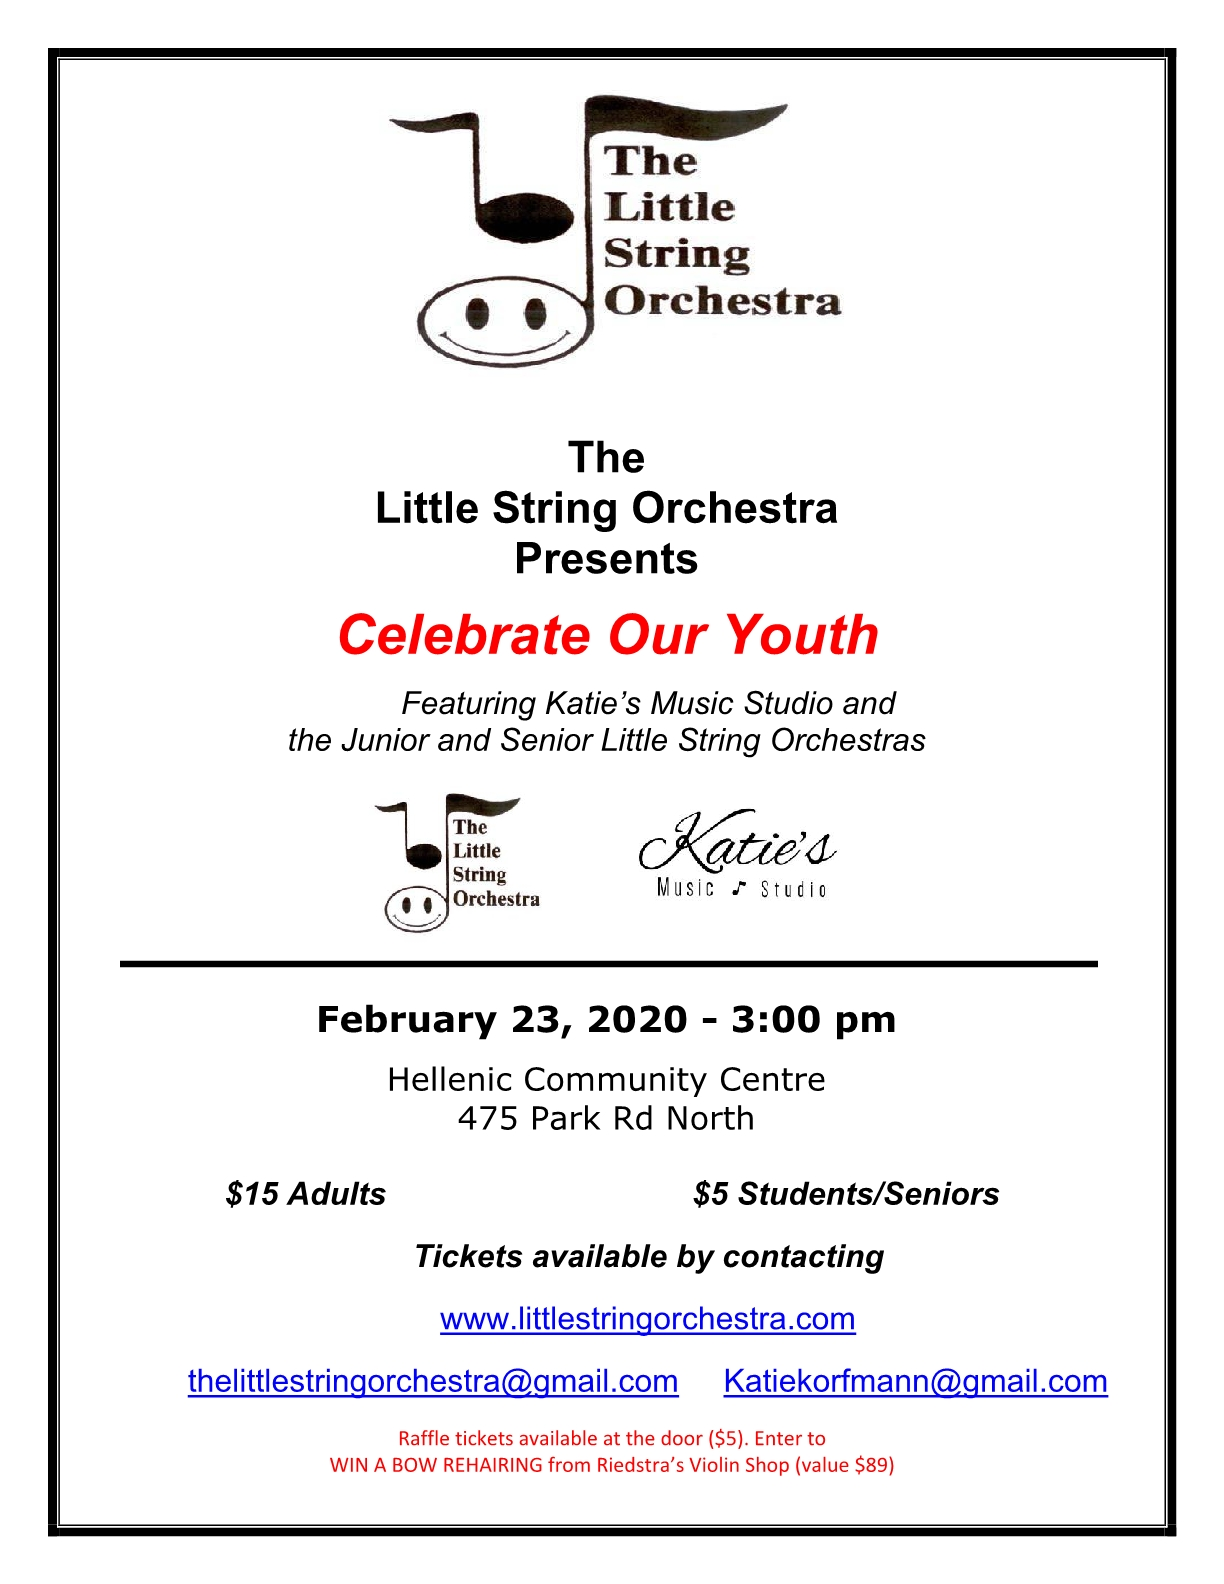 Celebrate Our Youth poster